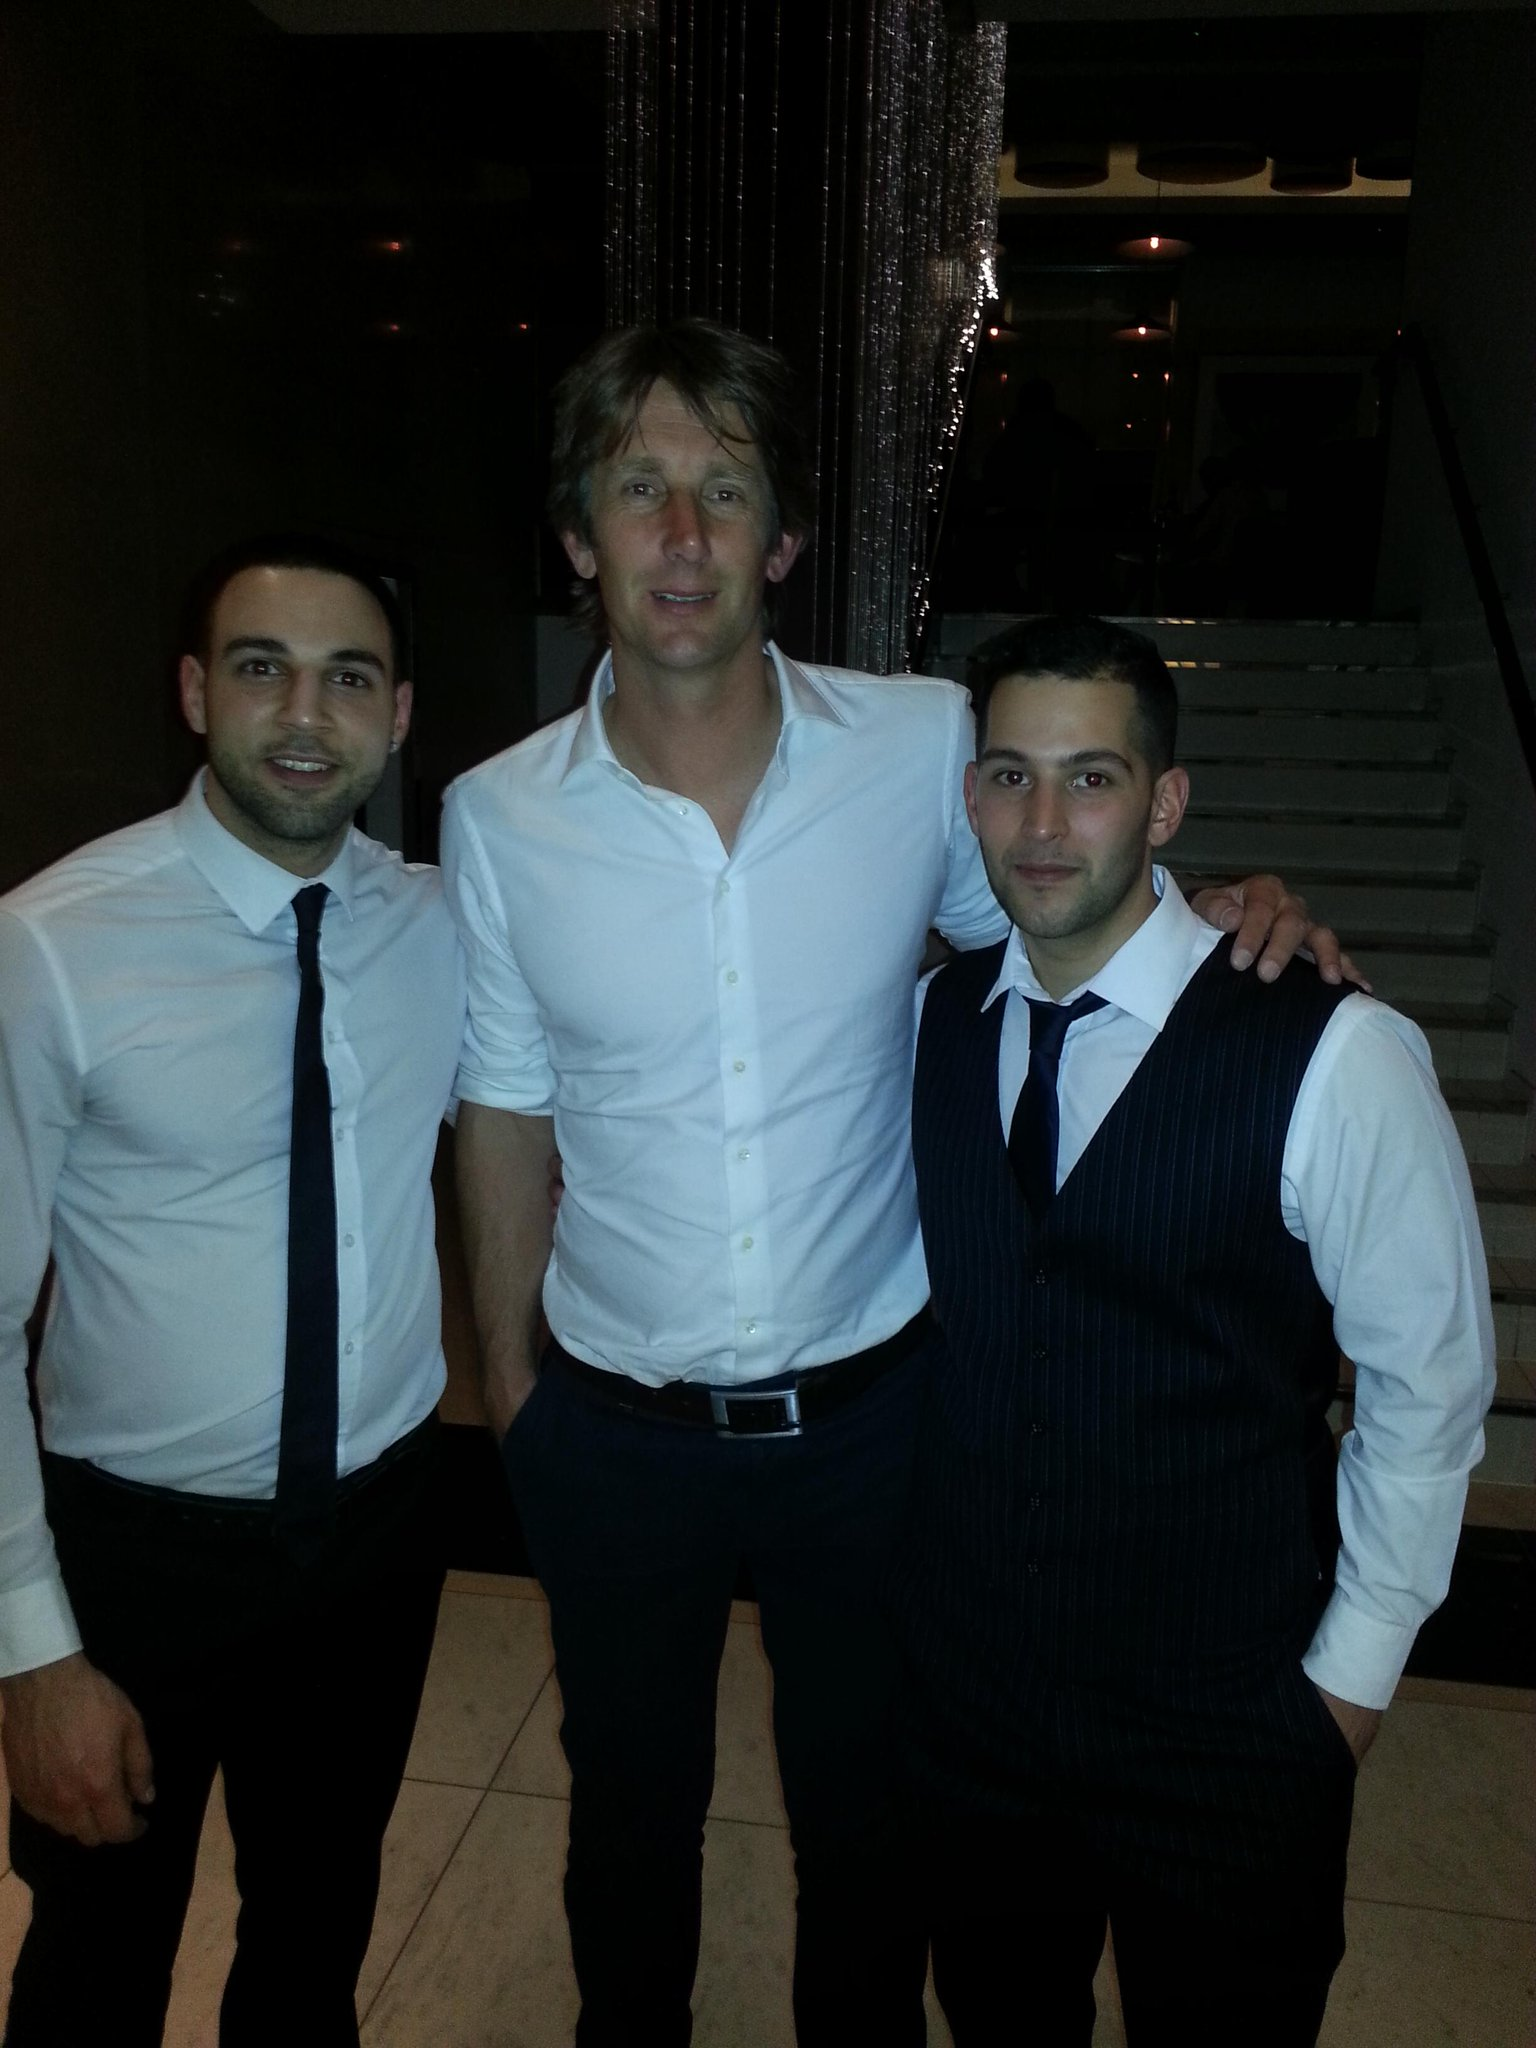 @vdsar1970 Thanks for the photo last night big man!! Me and @yus_p_23 were very happy http://t.co/Z5sn4qR17G